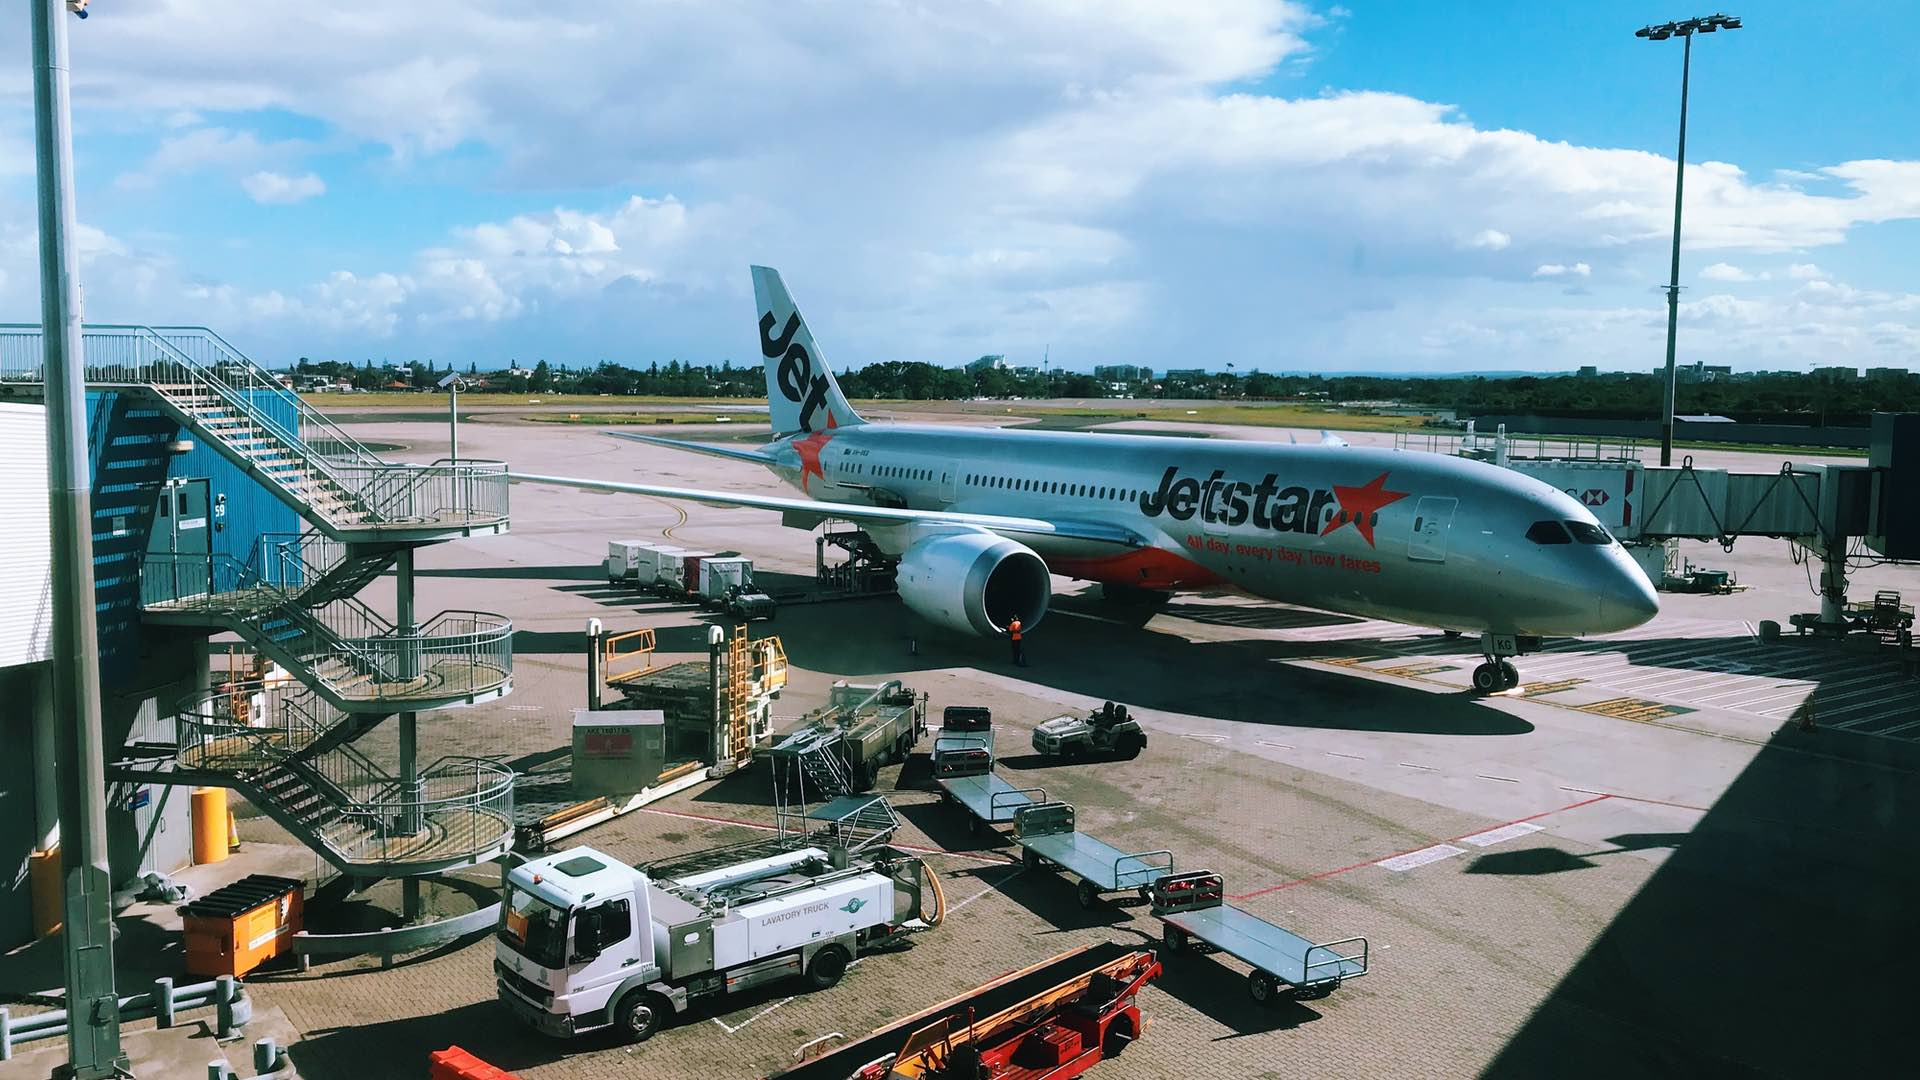 Jetstar Is Hosting Another Hefty Domestic Sale with Return Flights As Low As $65